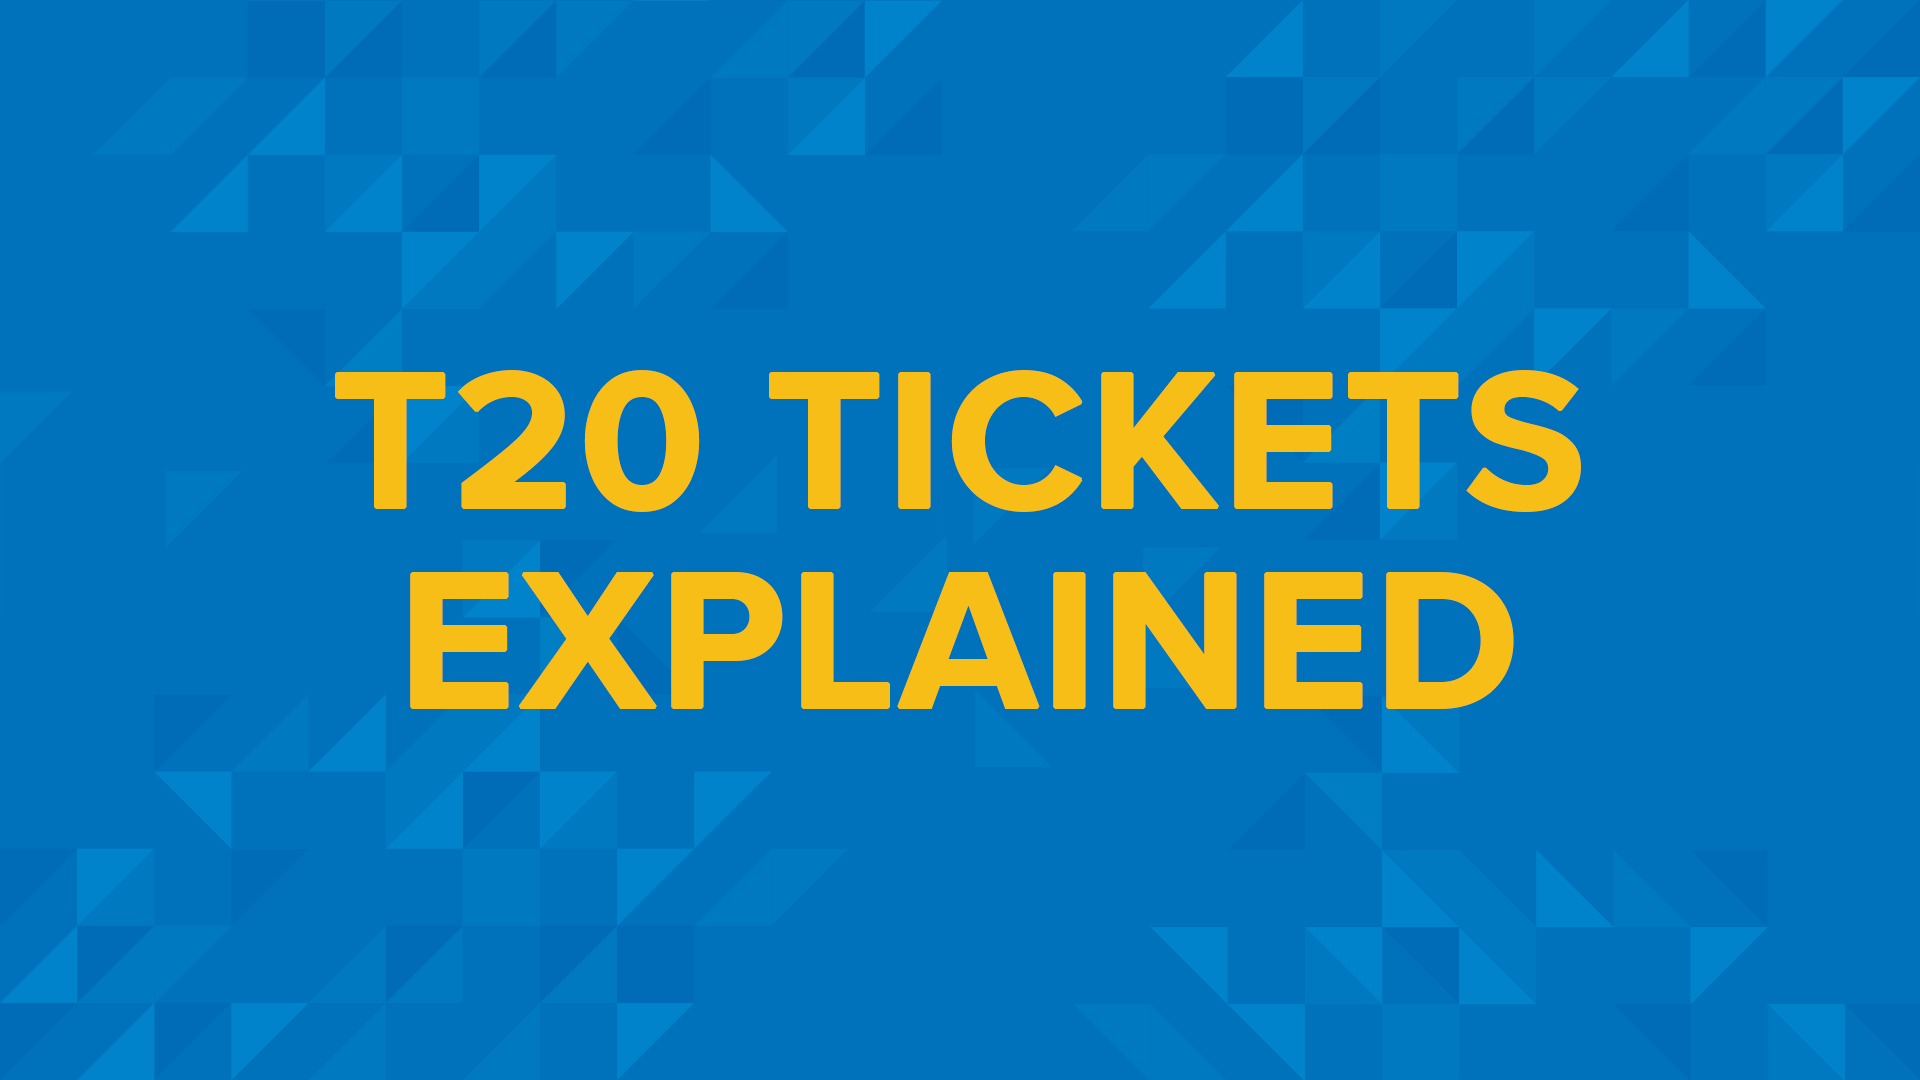 T20 Tickets Explained